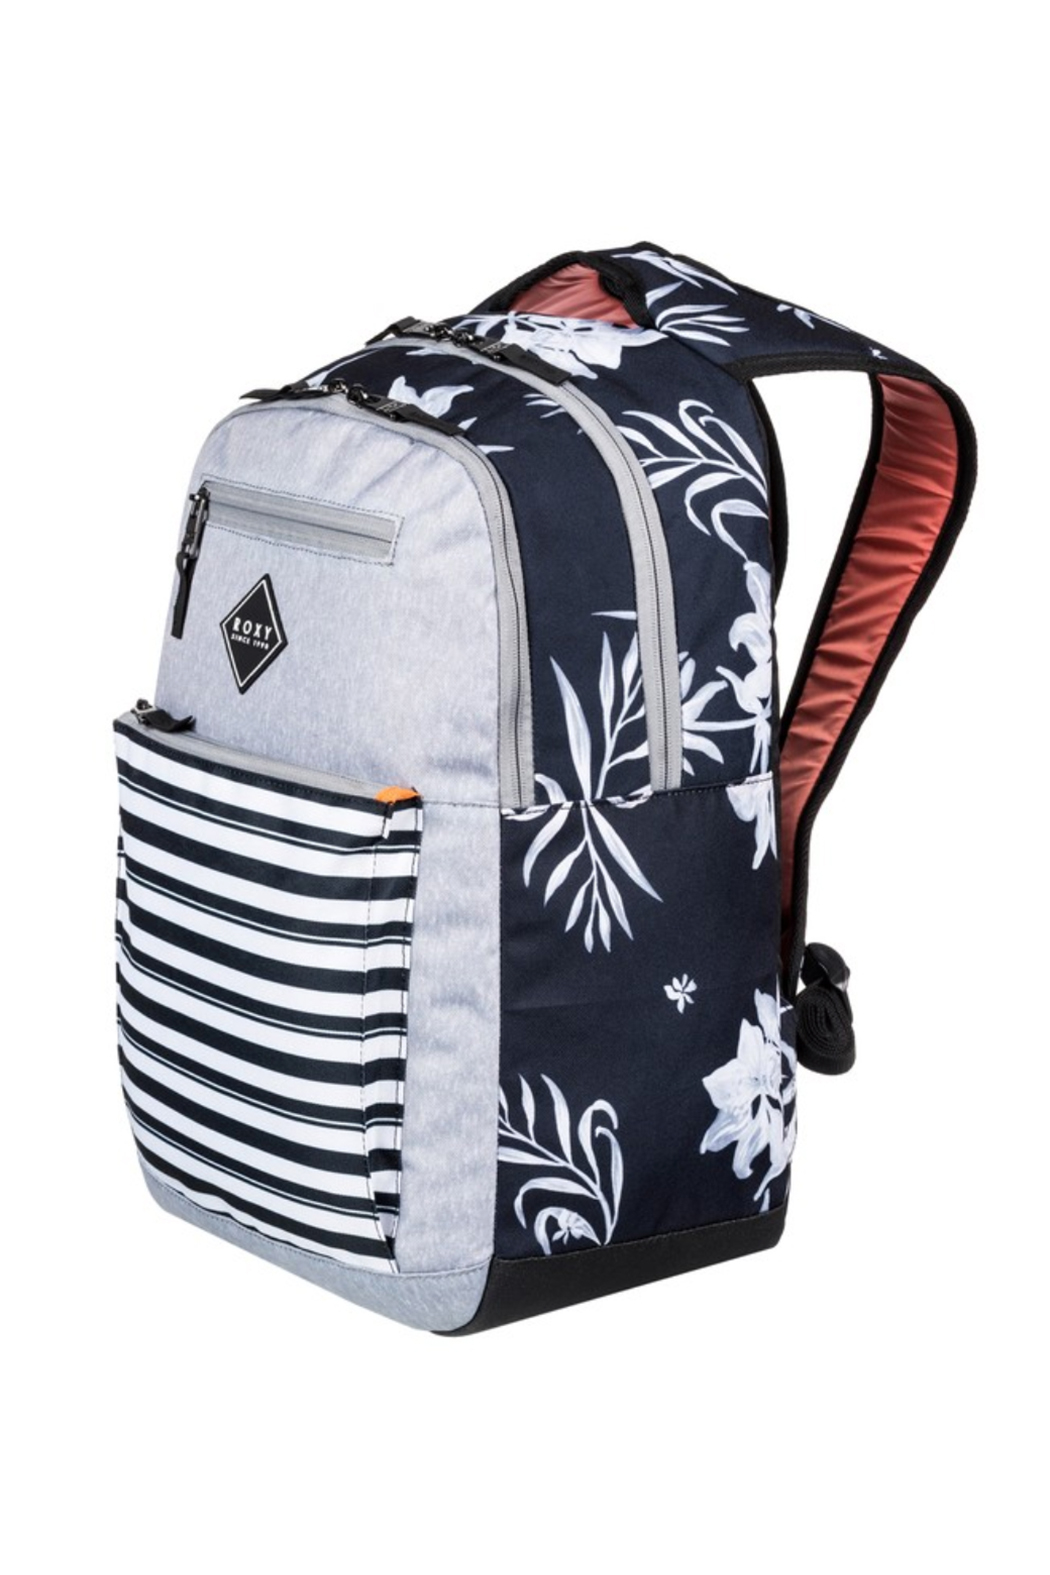 Roxy Here You Are 23.5L Medium Backpack - Front Full Image